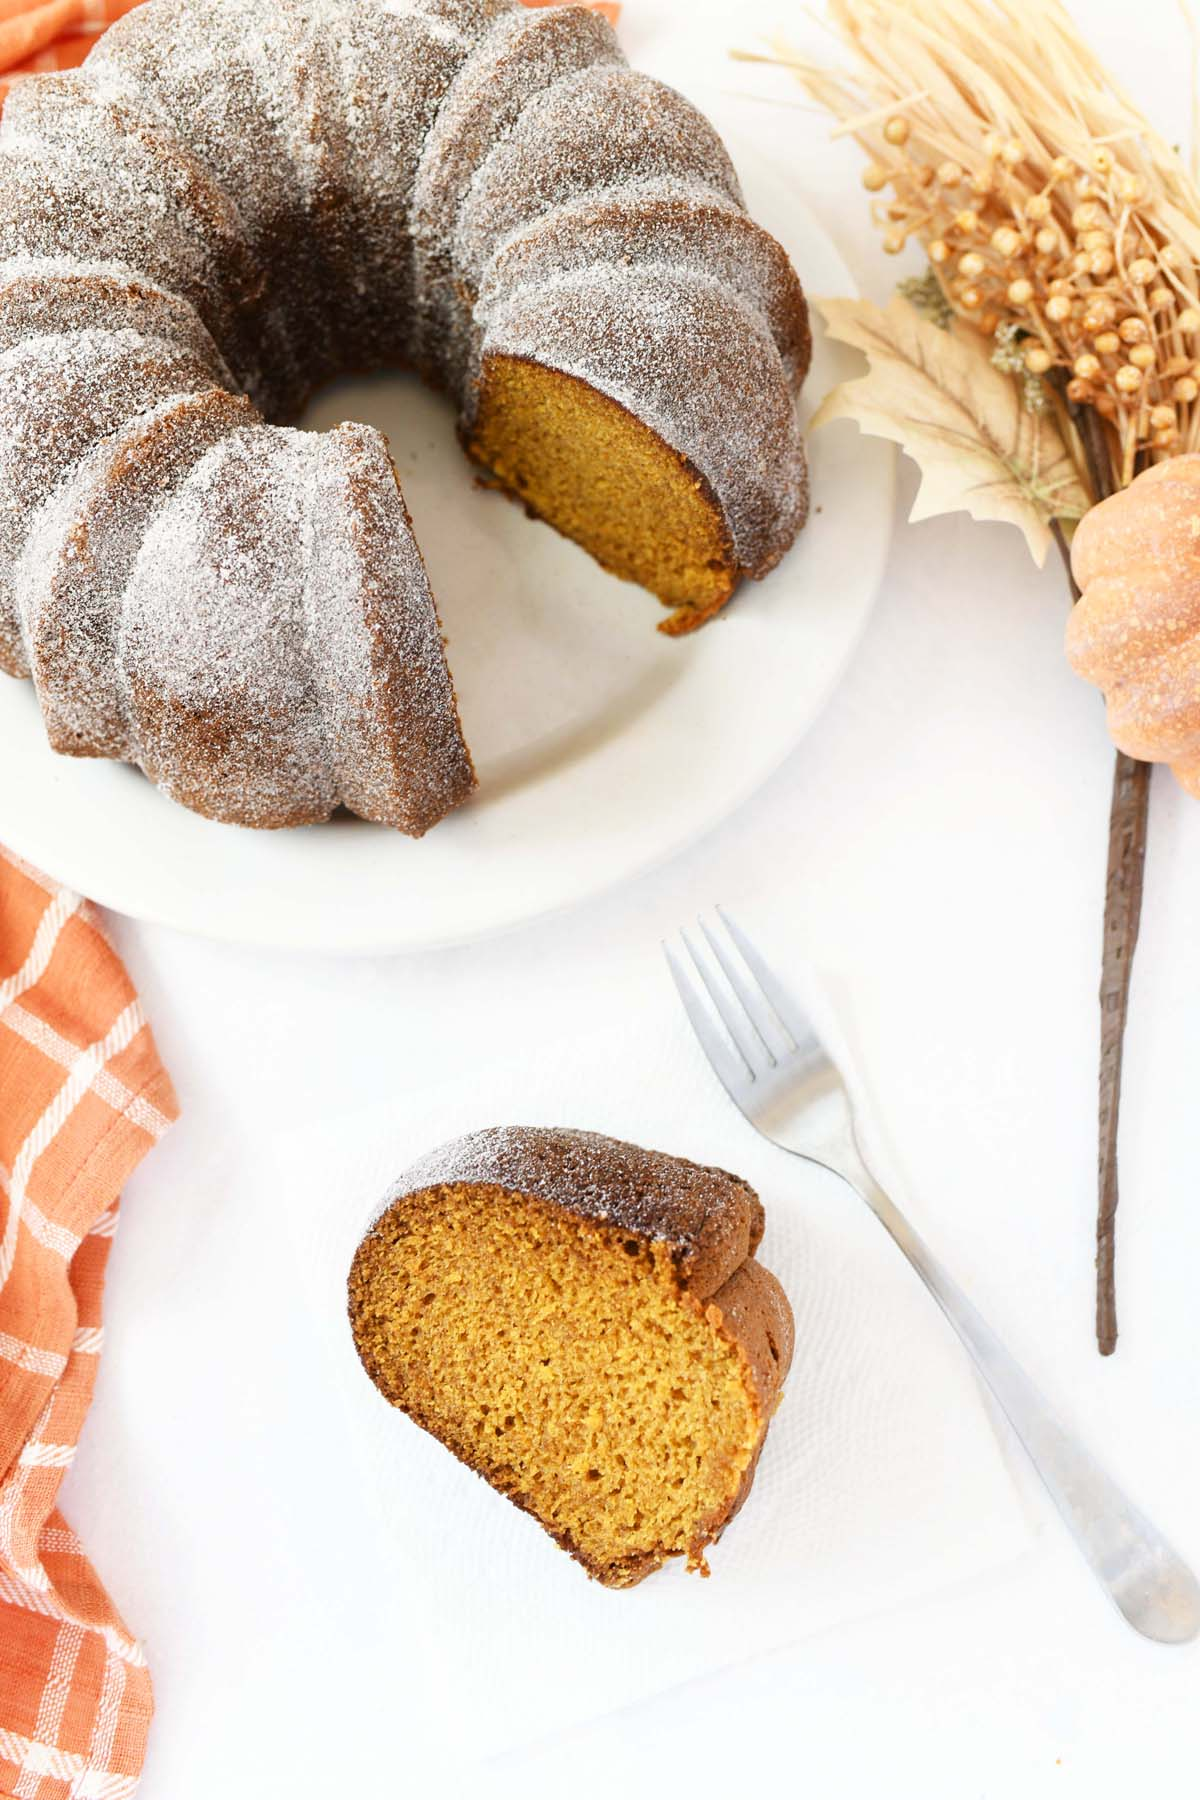 Cinnamon and Sugar Pumpkin Cake on a white plate with a silver fork.